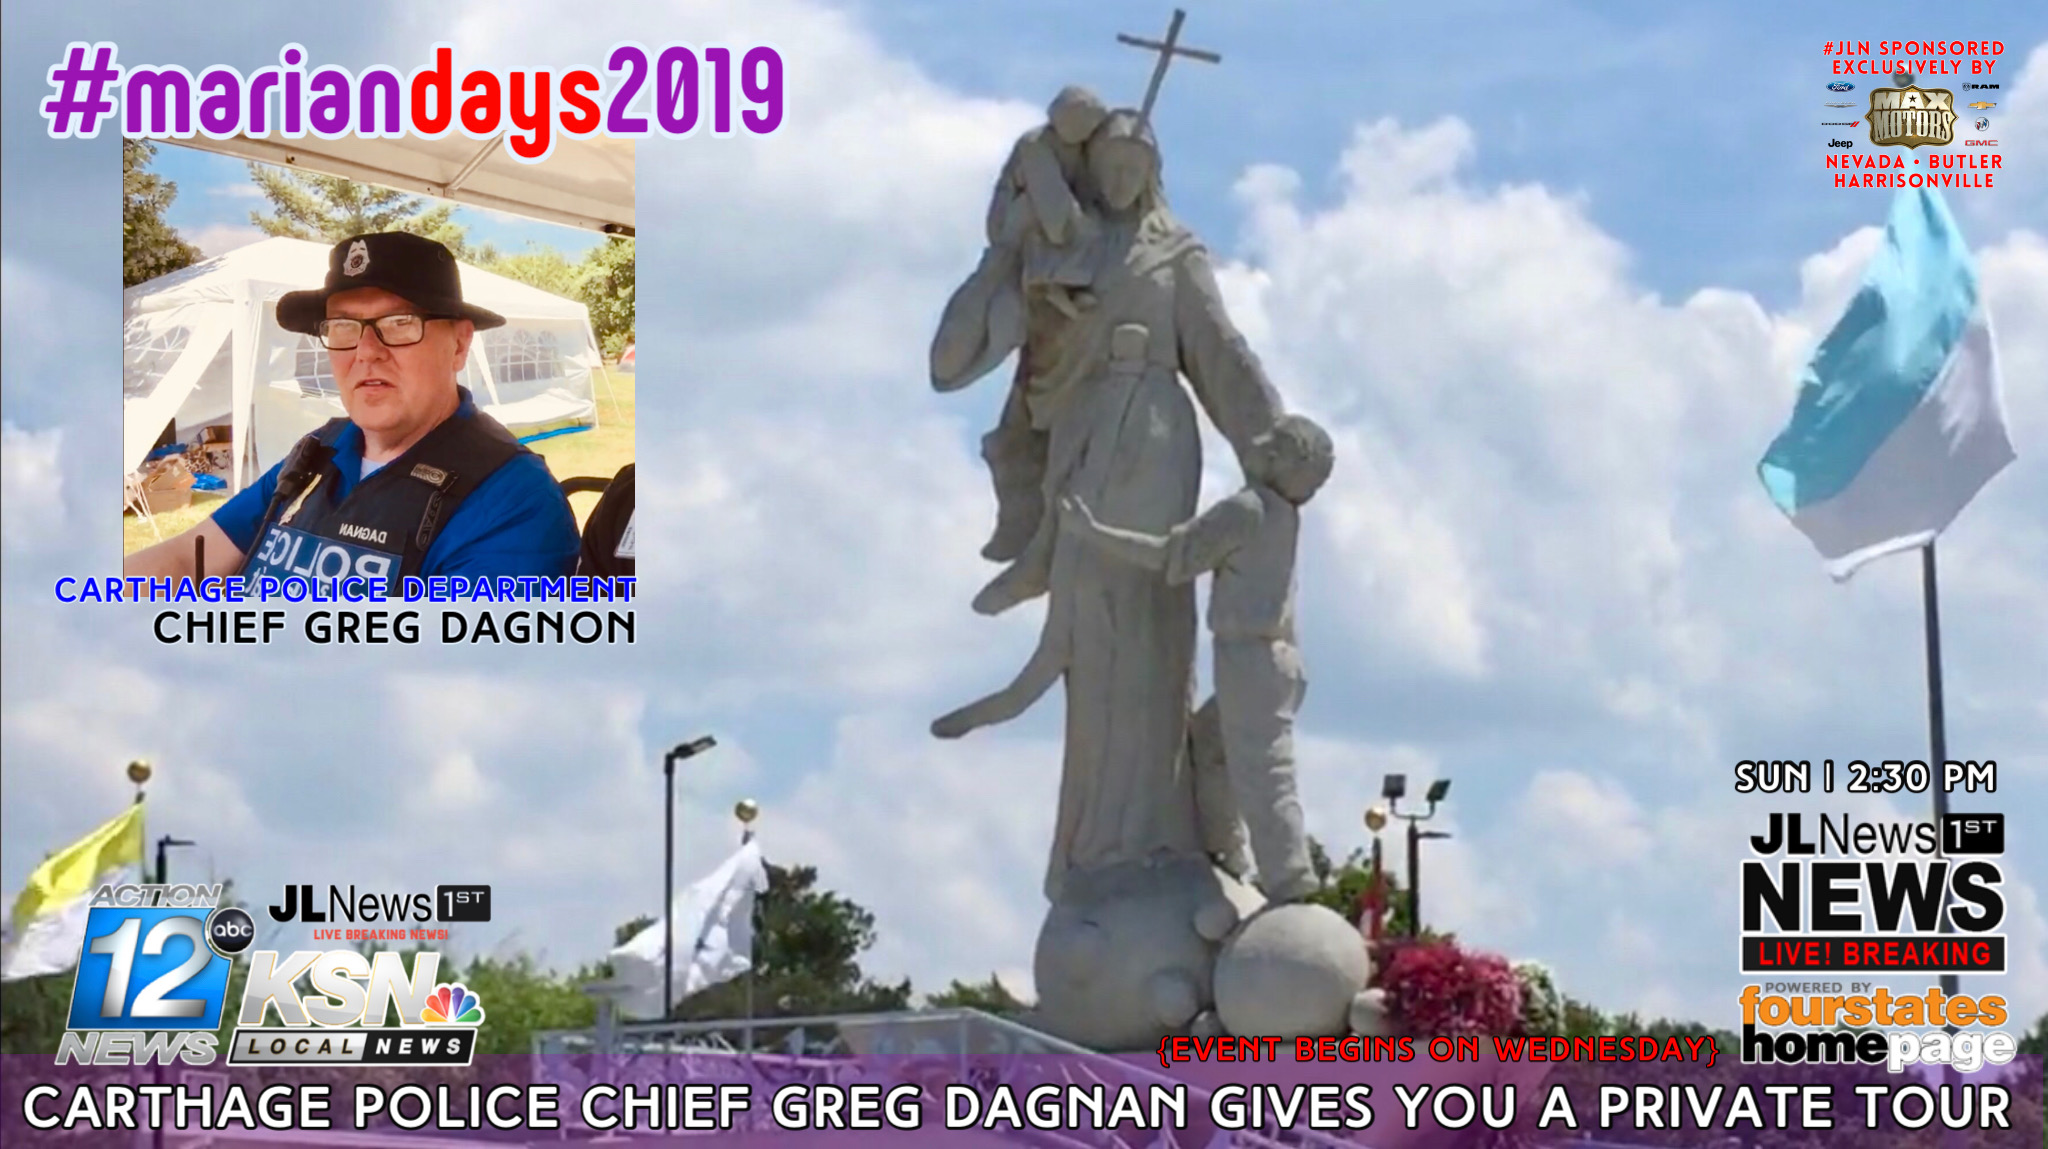 Marian Days 2019 in Carthage: Private Tour with Chief Greg Dagnan